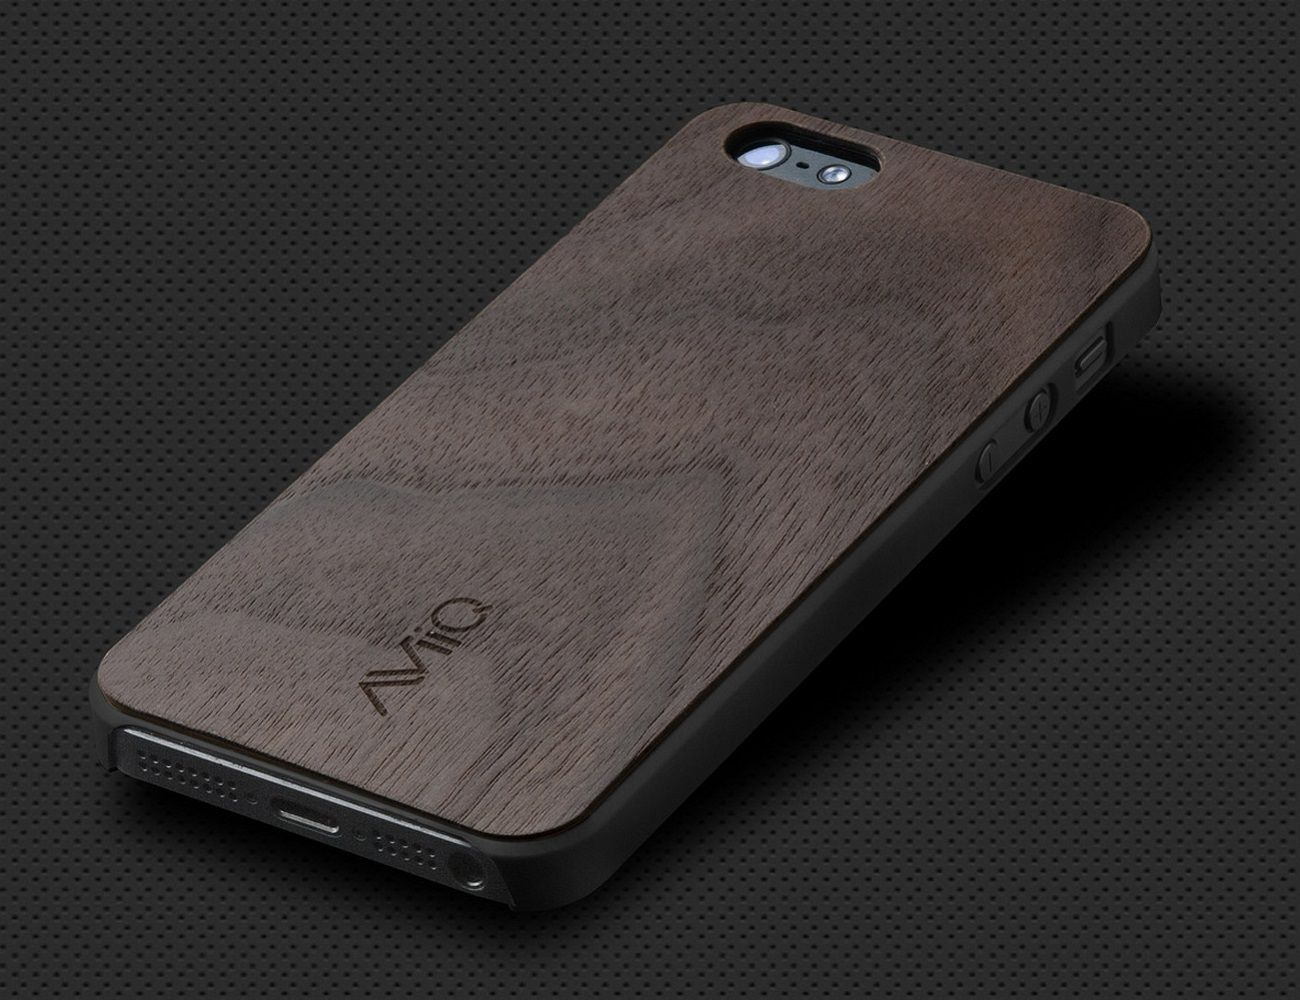 IPhone+5+Case+By+AViiQ